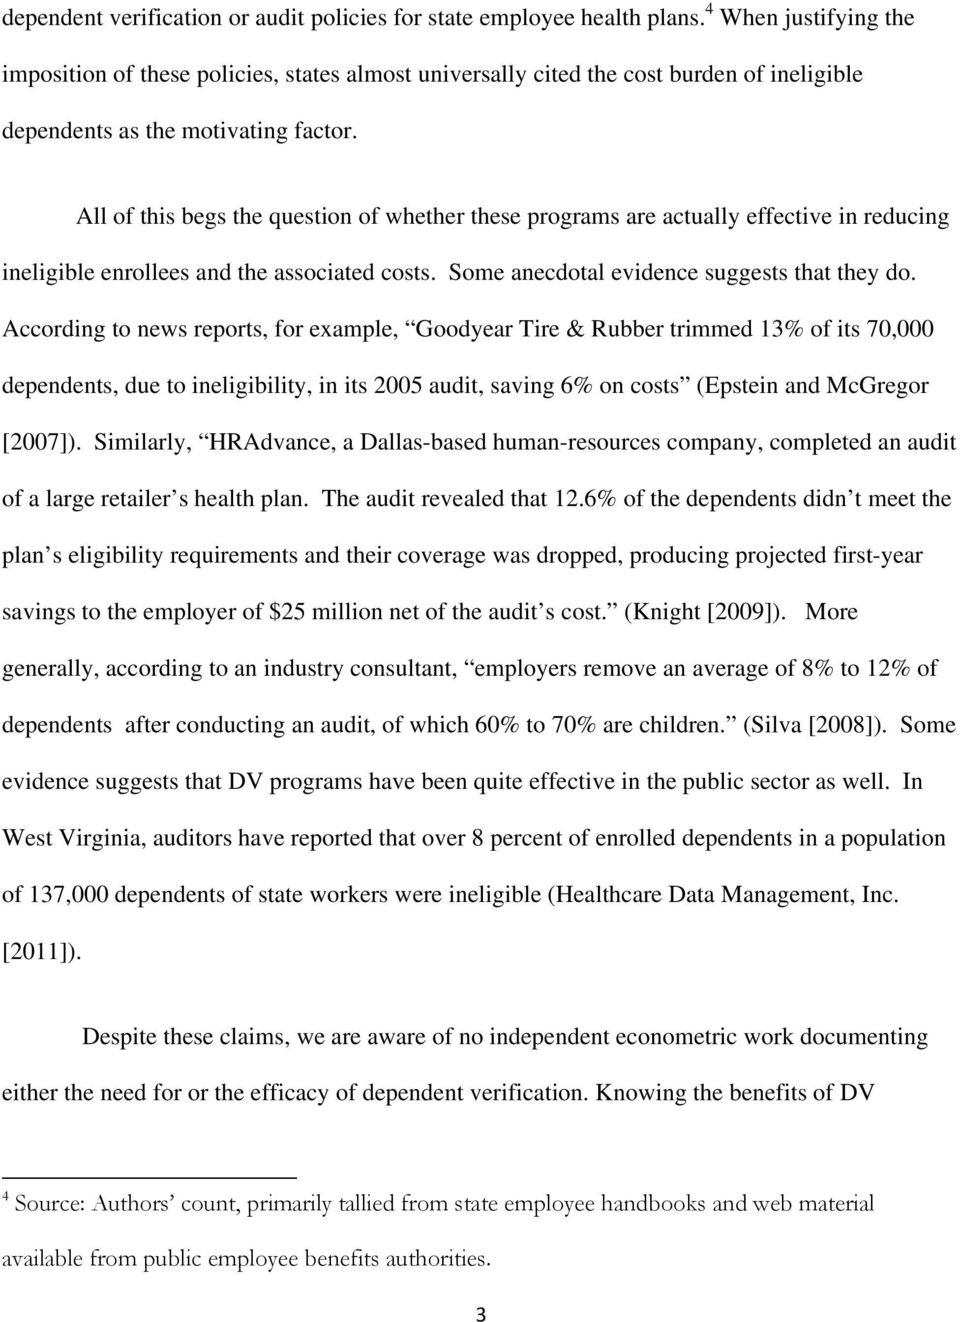 All of this begs the question of whether these programs are actually effective in reducing ineligible enrollees and the associated costs. Some anecdotal evidence suggests that they do.